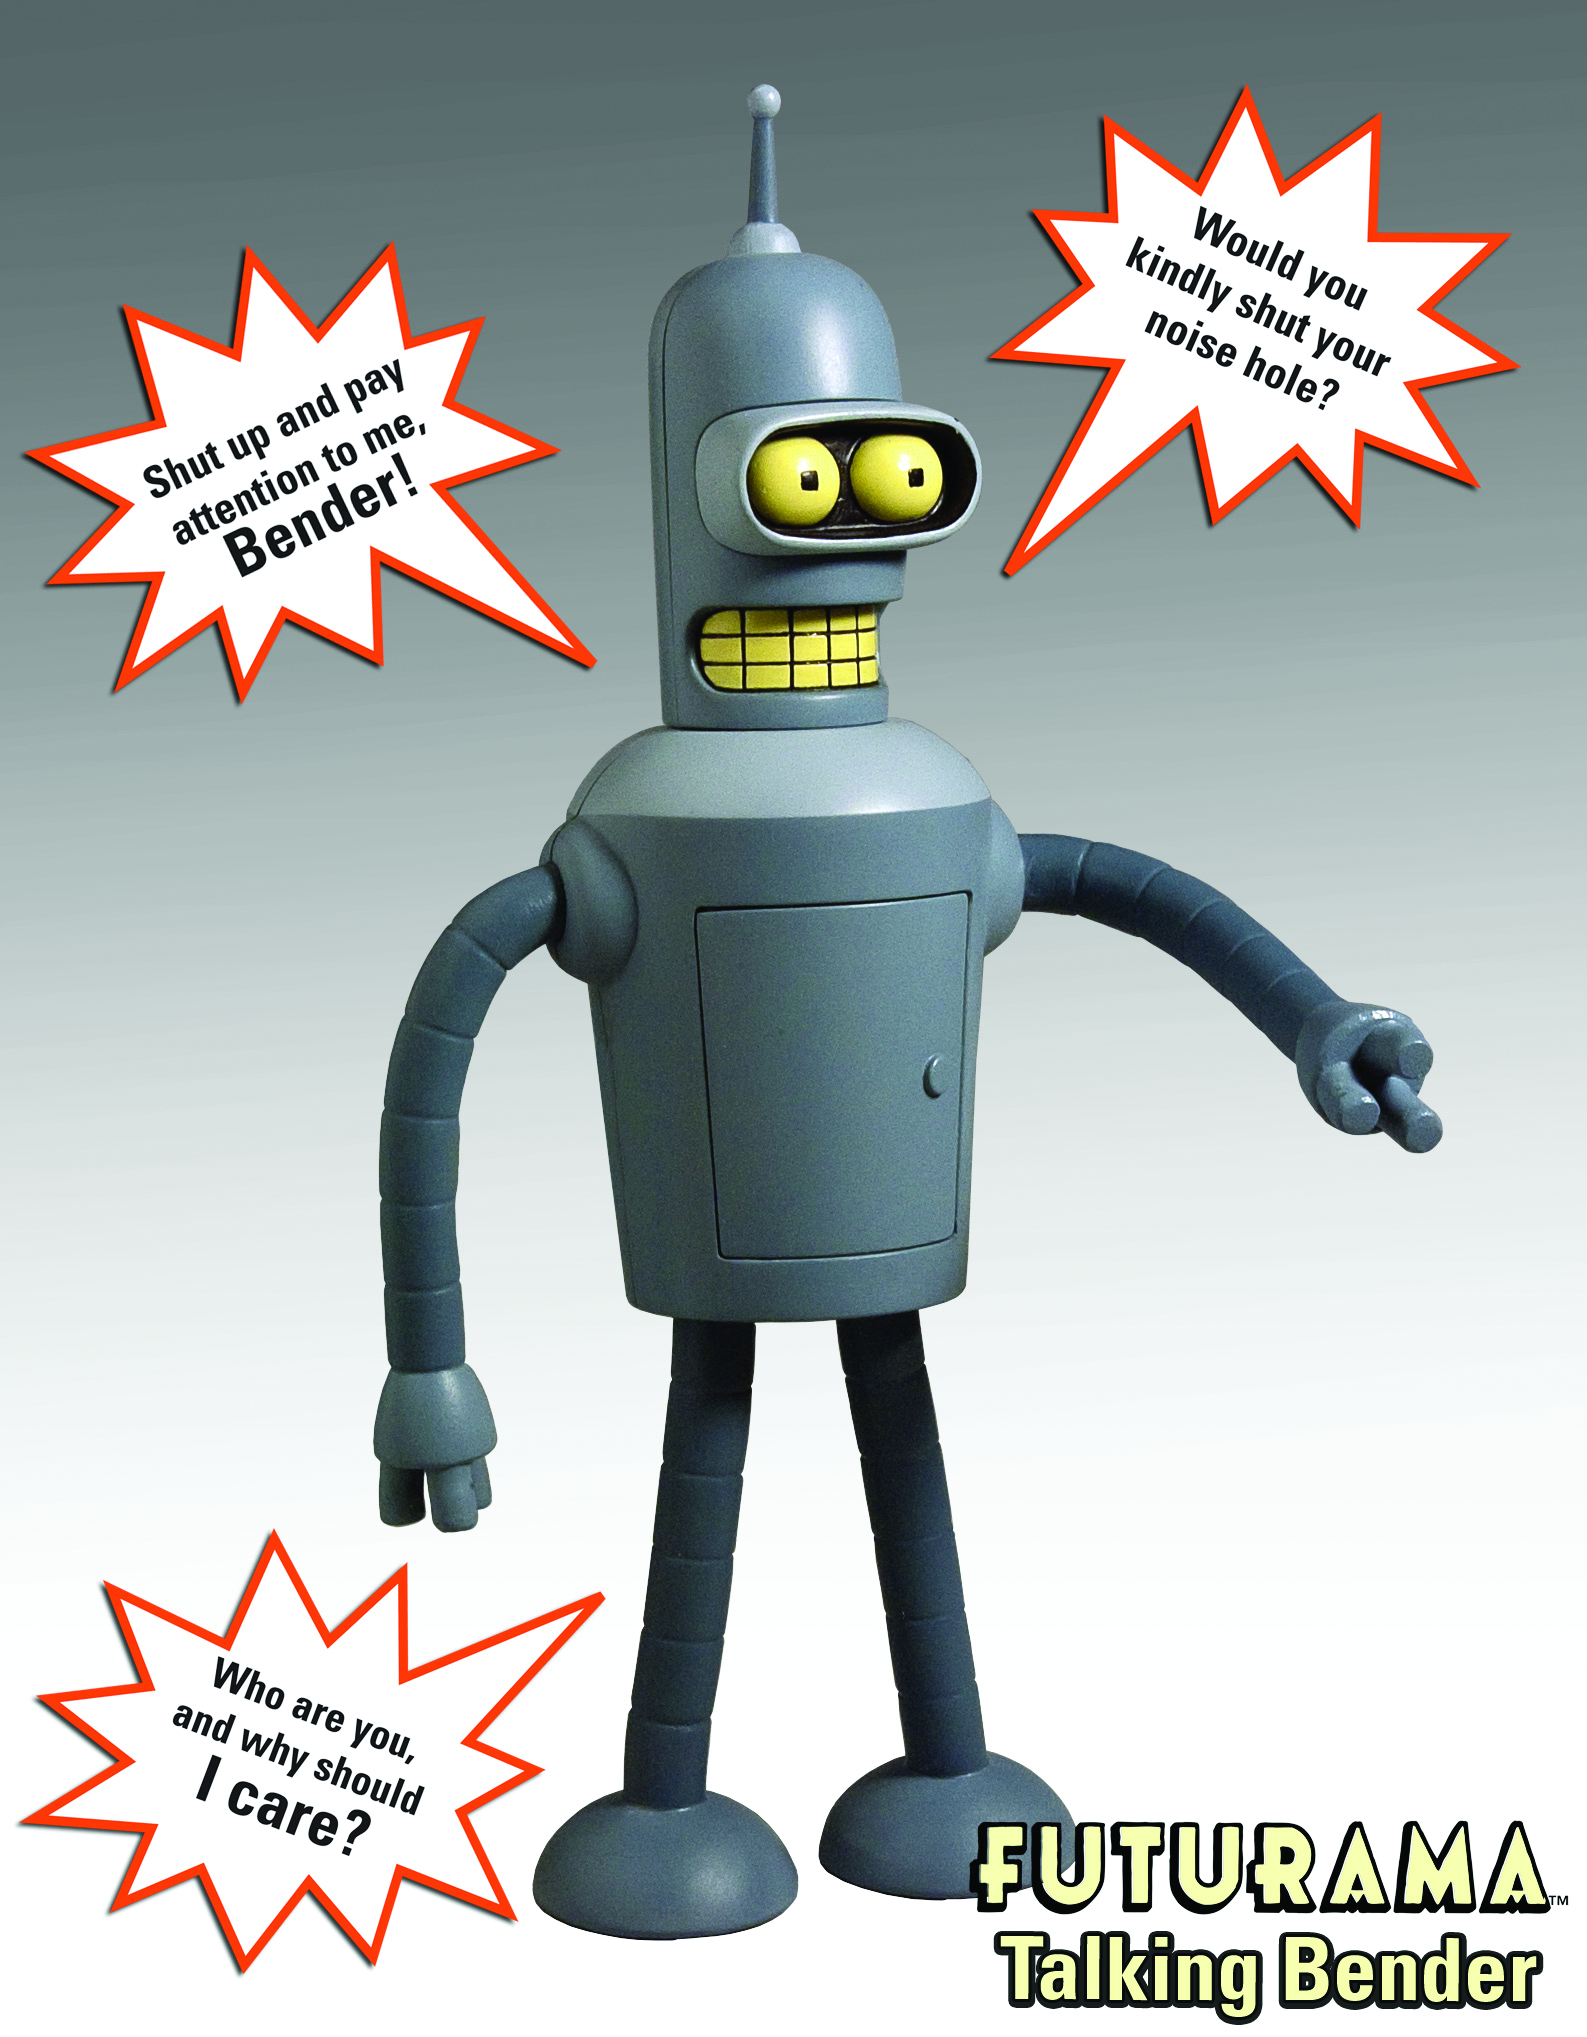 FUTURAMA TALKING BENDER FIGURE